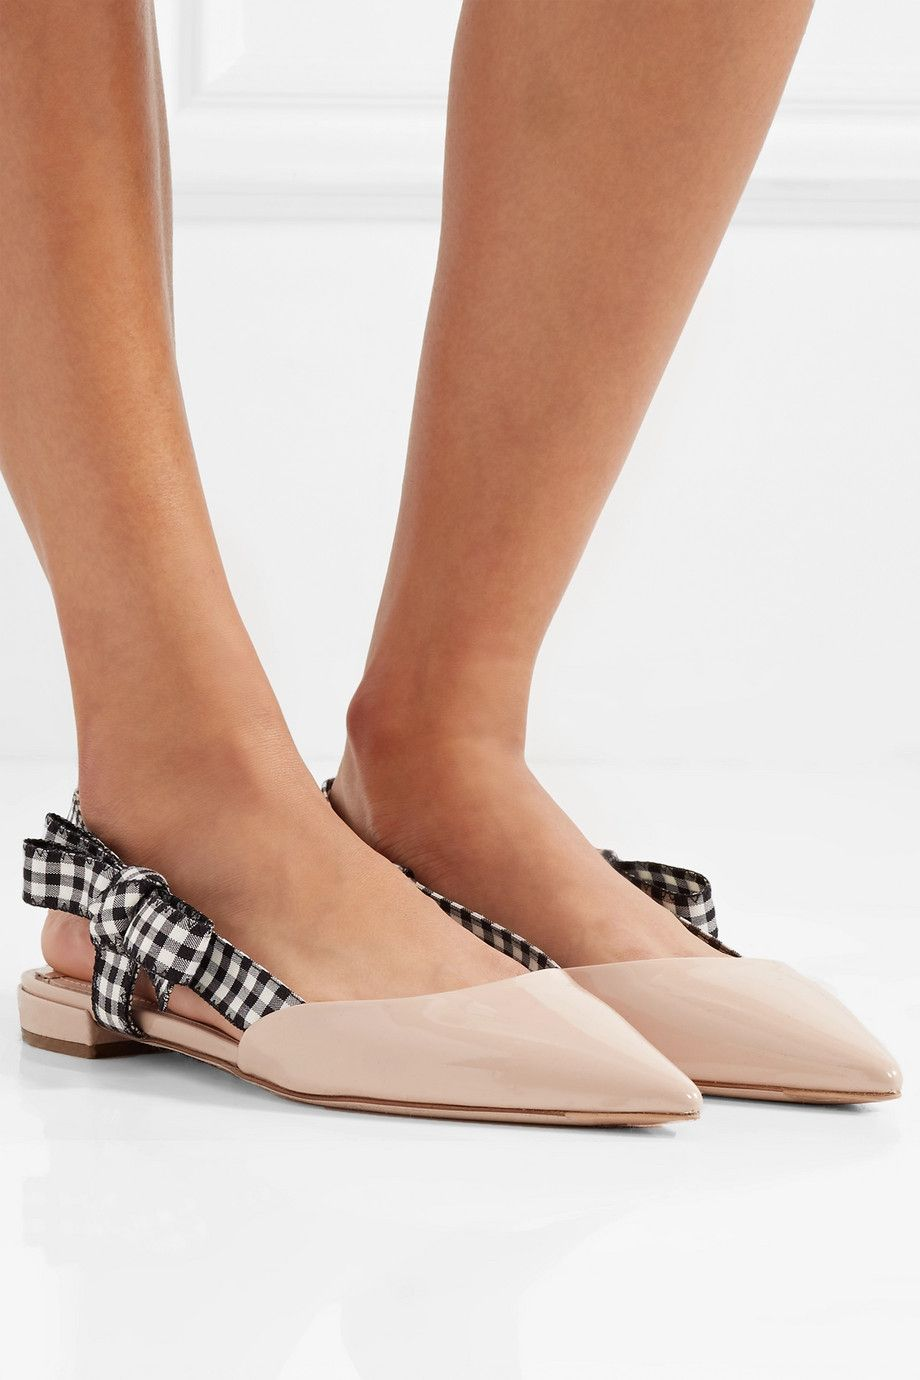 Miu Miu Patent Pointy-Toe Flat best place low cost sale online sale factory outlet pictures cheap price CMGJfw